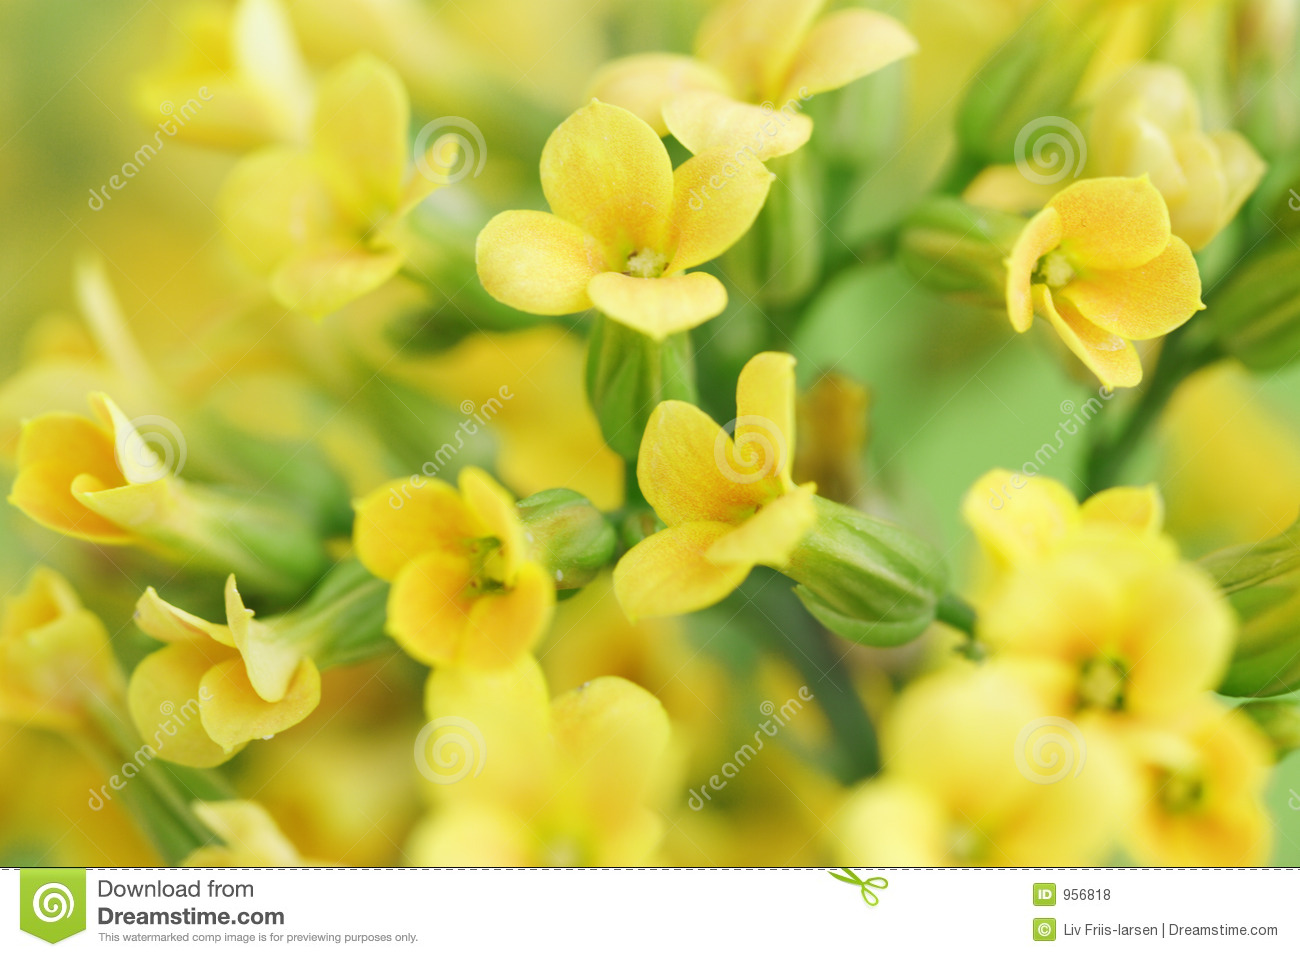 Free pictures of yellow flowers clip art free download Yellow Flowers Stock Photos, Images, & Pictures - 325,509 Images clip art free download